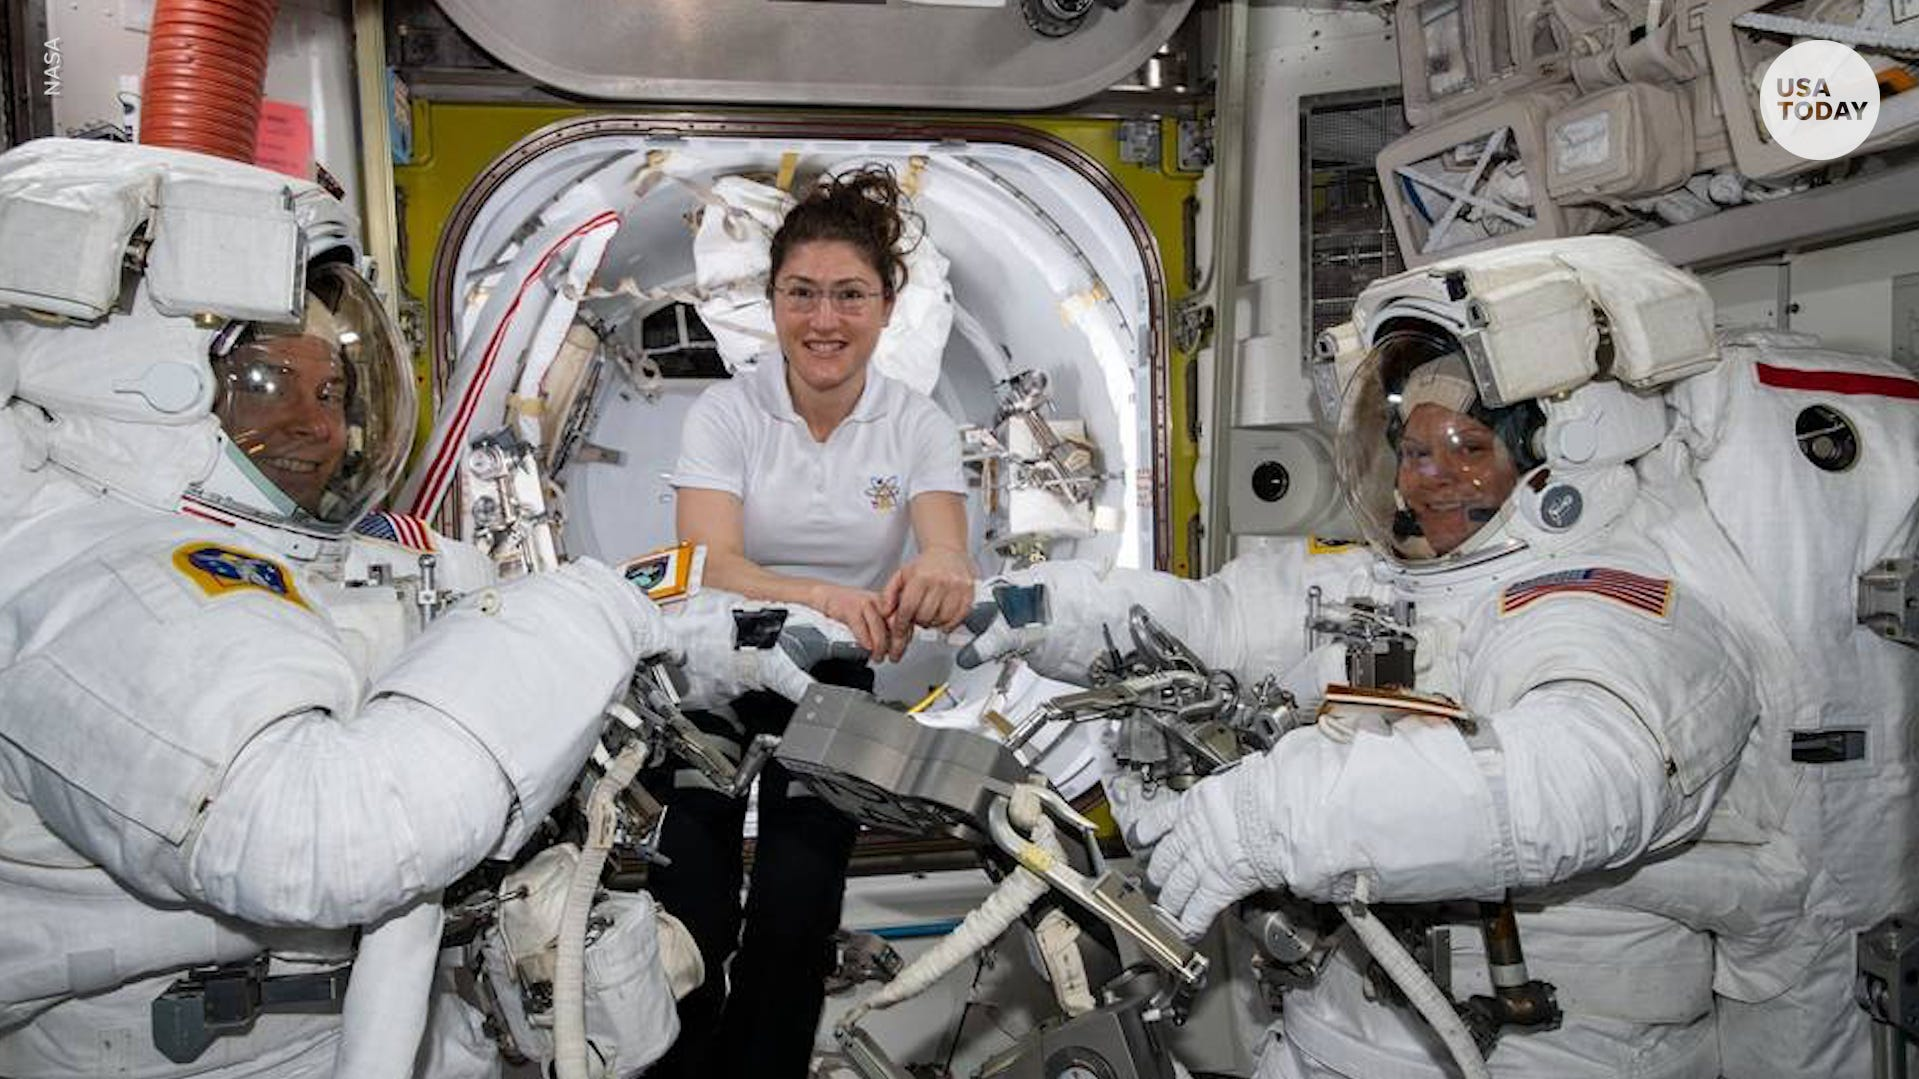 First 'historic' all-female spacewalk canceled for surprising reason